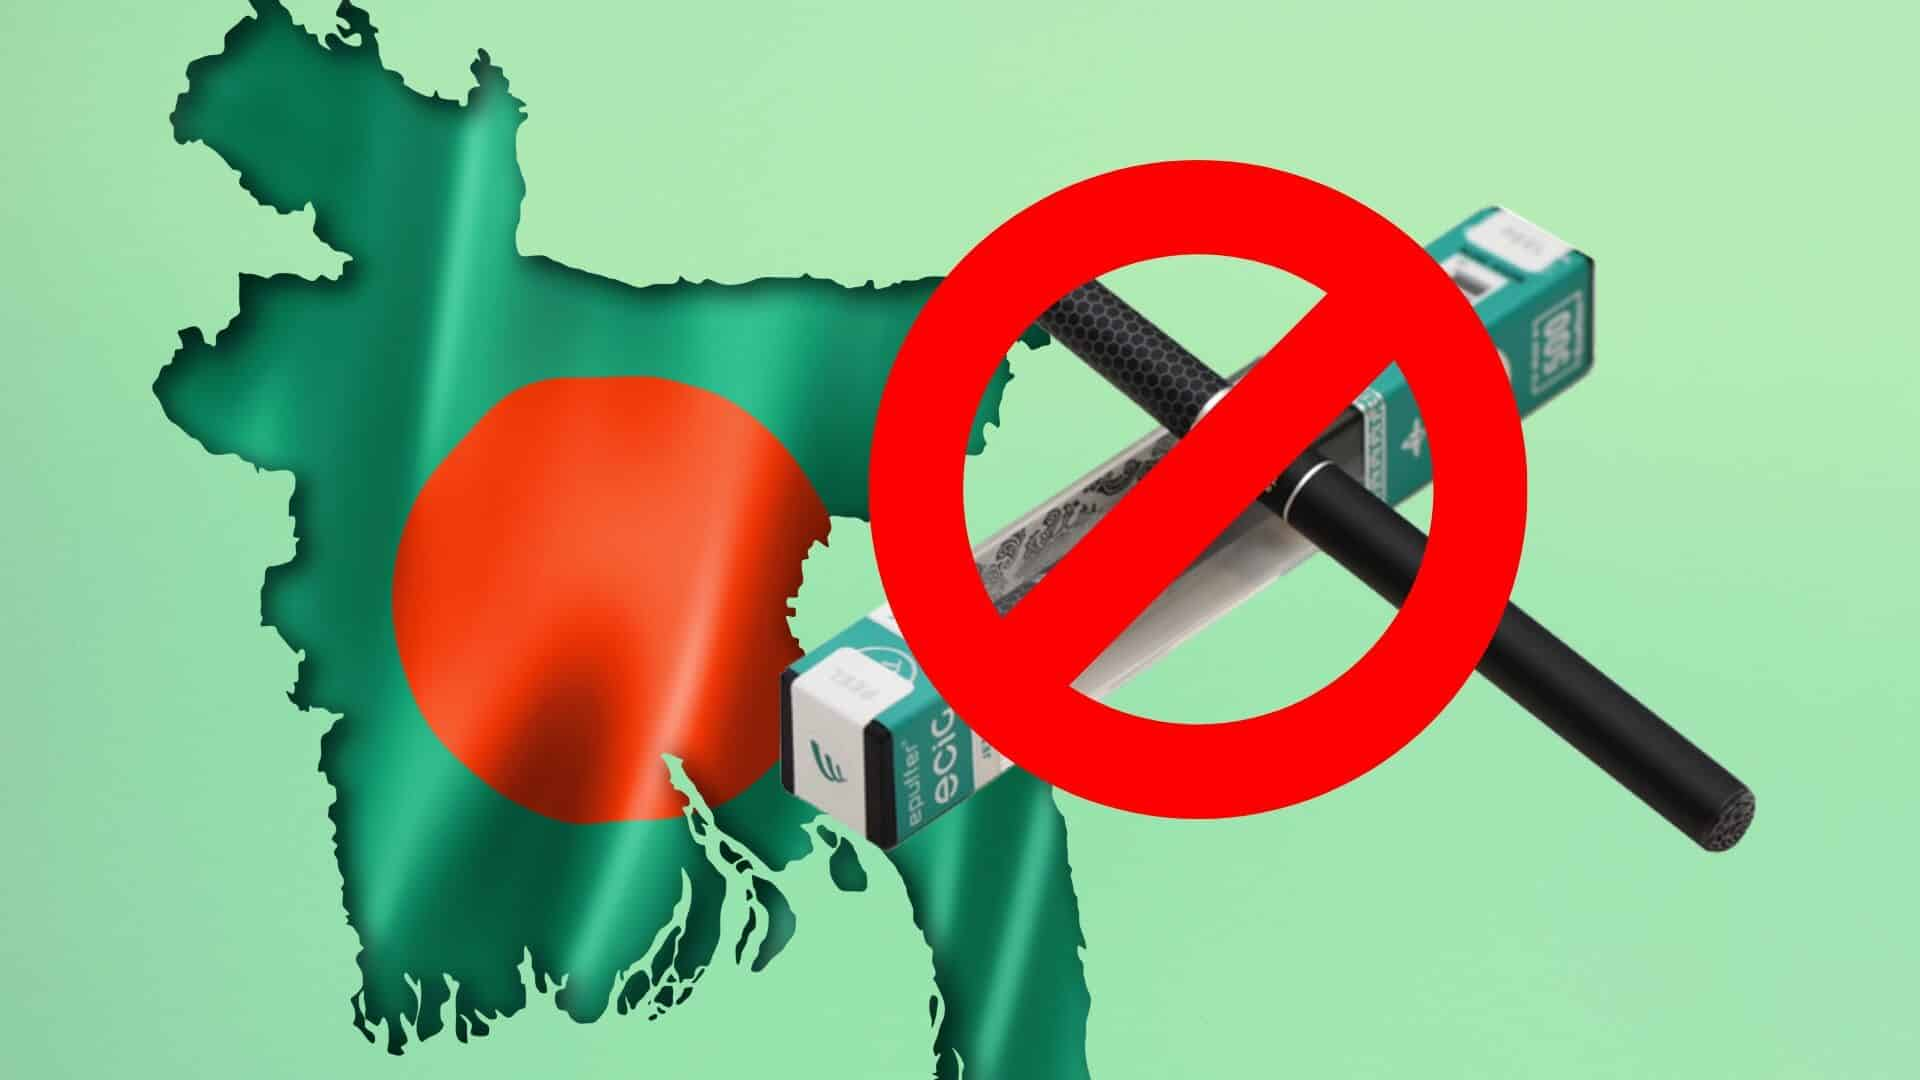 Bangladesh is Prohibiting Electronic Cigarettes and Vapes due to Growing Health Risks